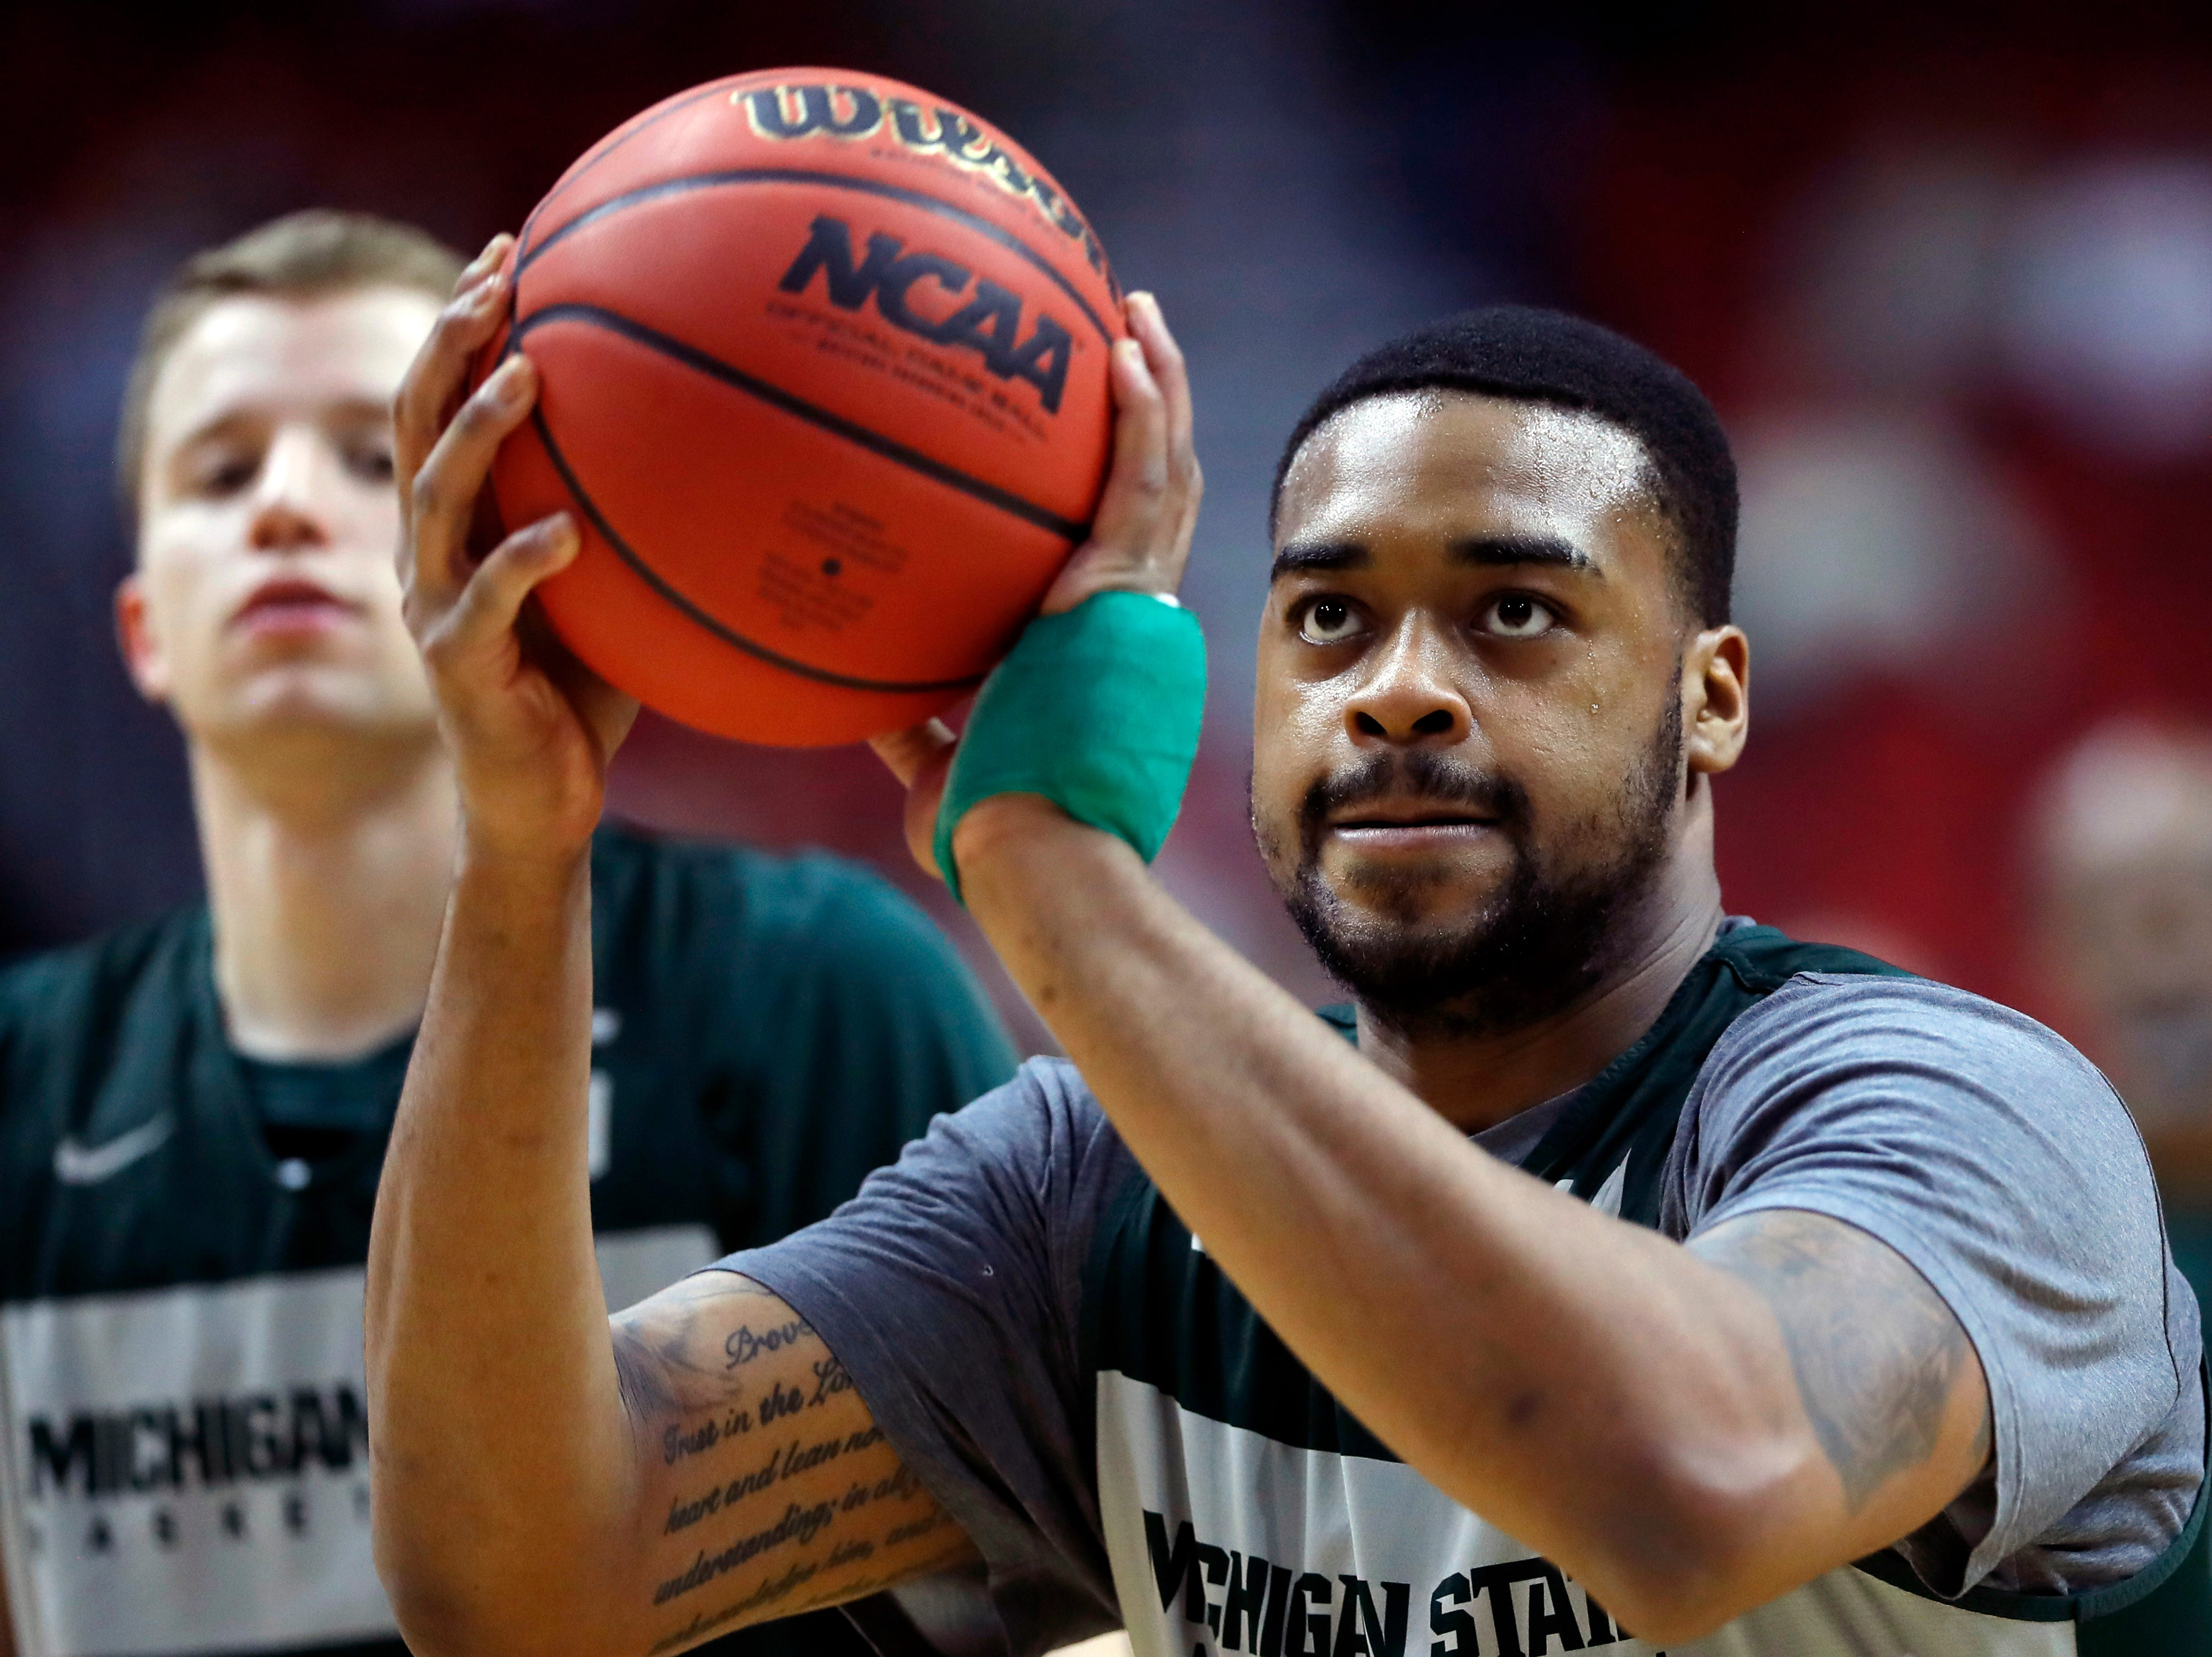 Michigan State forward Nick Ward shoots a free throw during practice at the NCAA men's college basketball tournament, Wednesday, March 20, 2019, in Des Moines, Iowa. Michigan State plays Bradley on Thursday. (AP Photo/Charlie Neibergall)